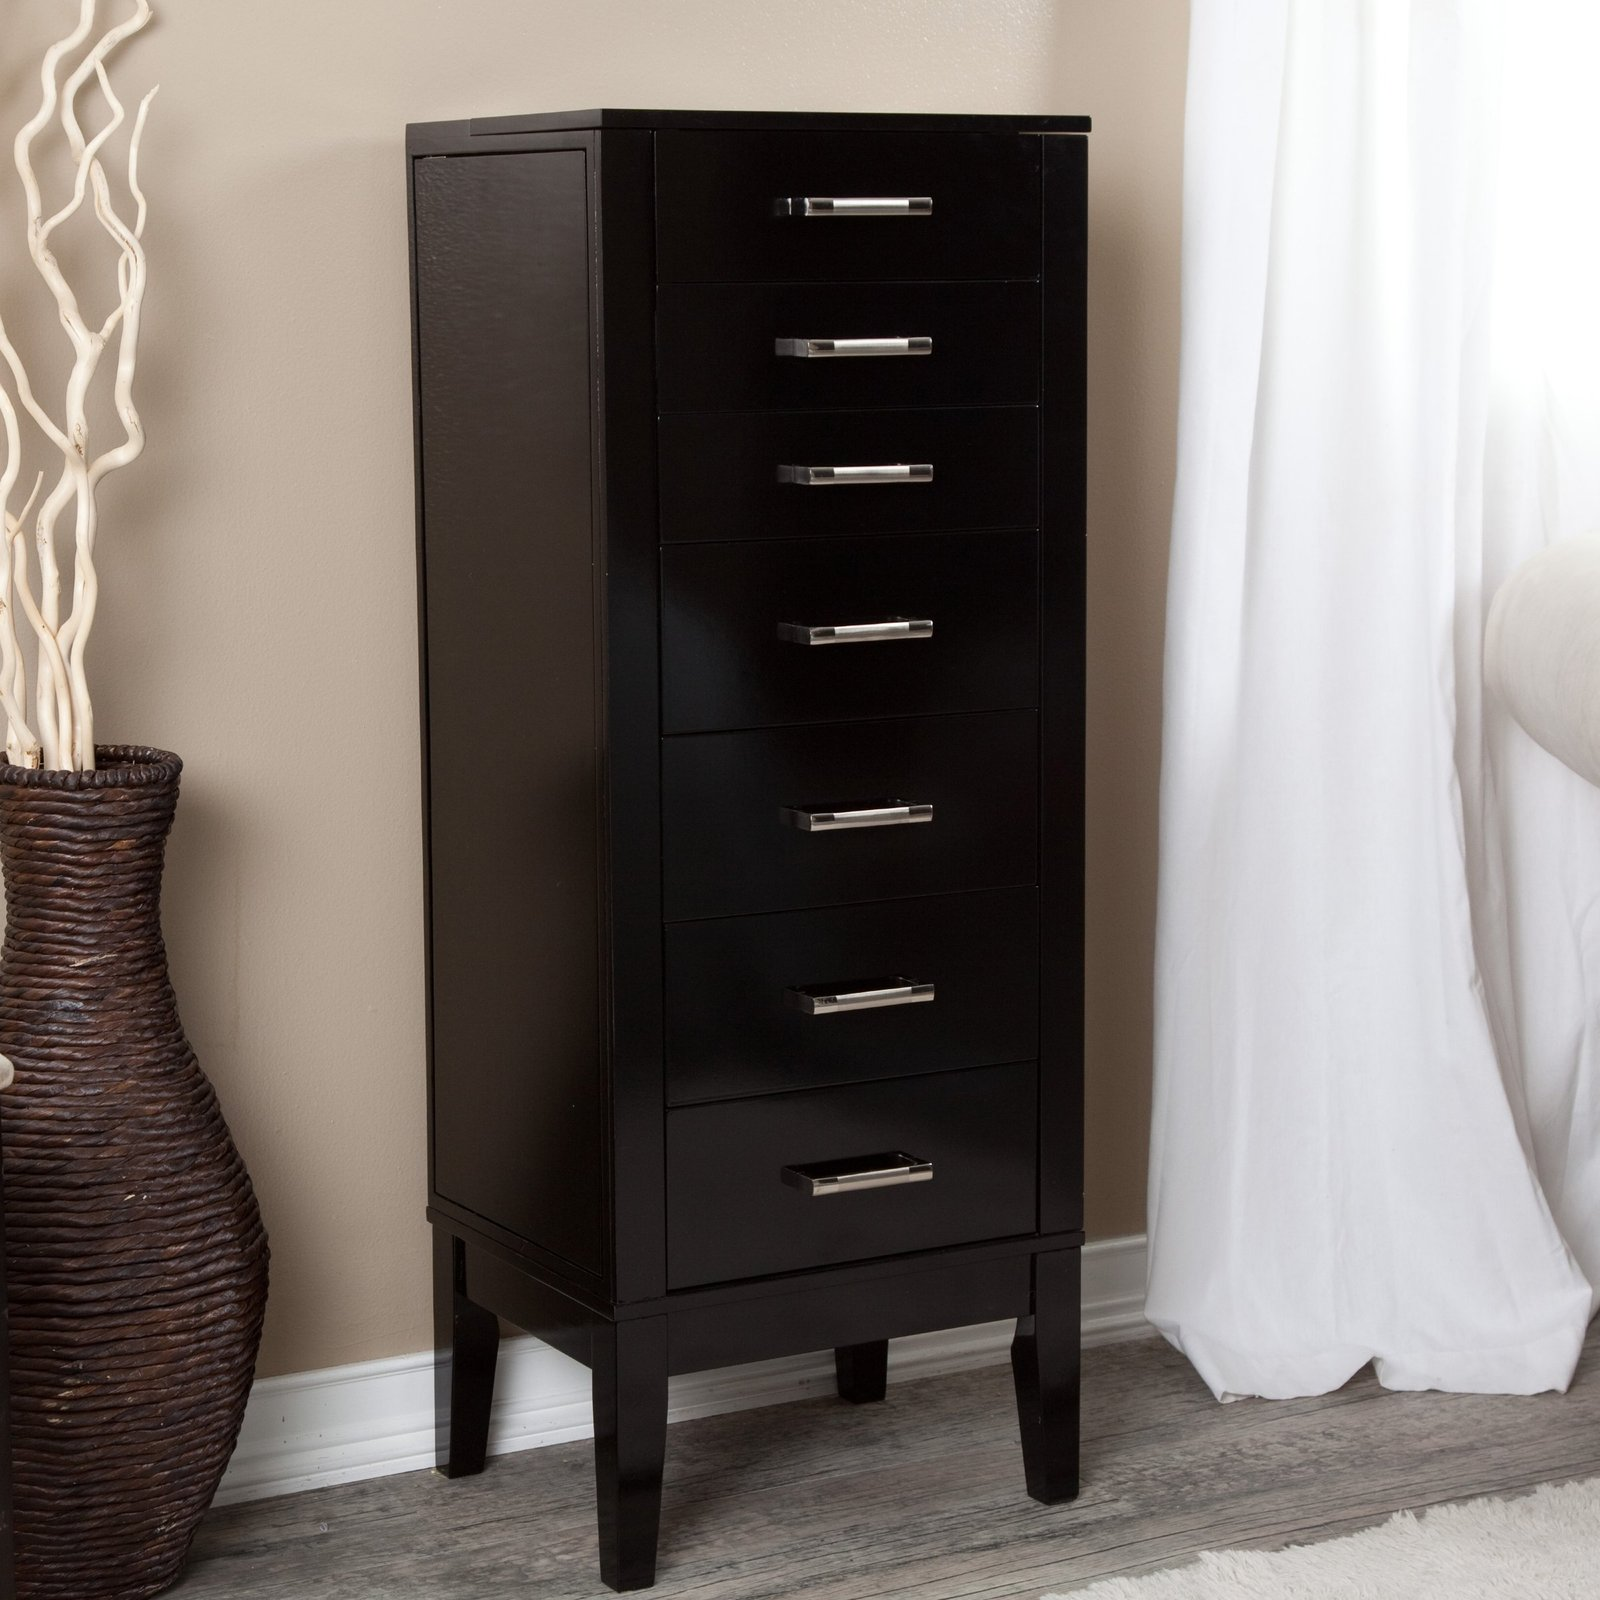 standing jewelry armoire black necklace ring wood storage organizer tall chest multi purpose. Black Bedroom Furniture Sets. Home Design Ideas